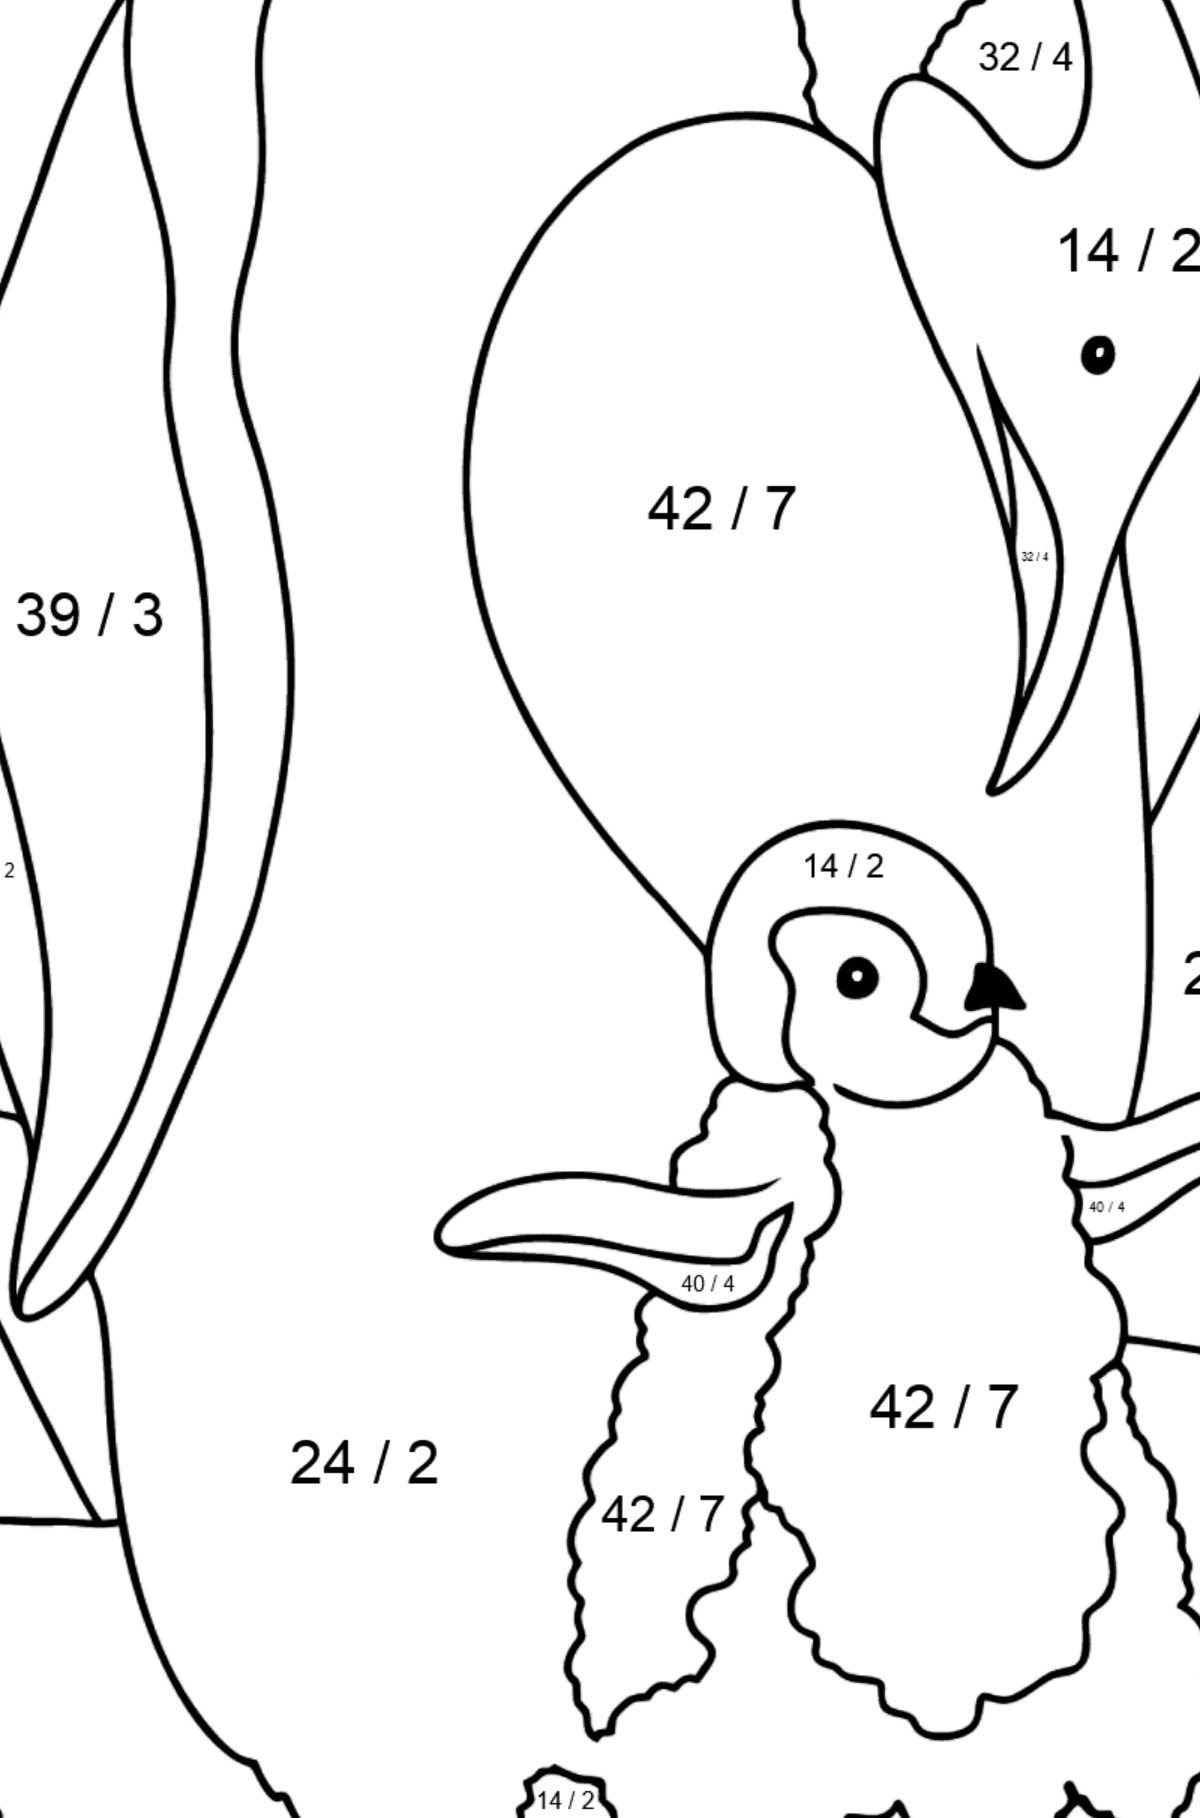 Coloring Page - A Penguin with a Baby - Math Coloring - Division for Kids